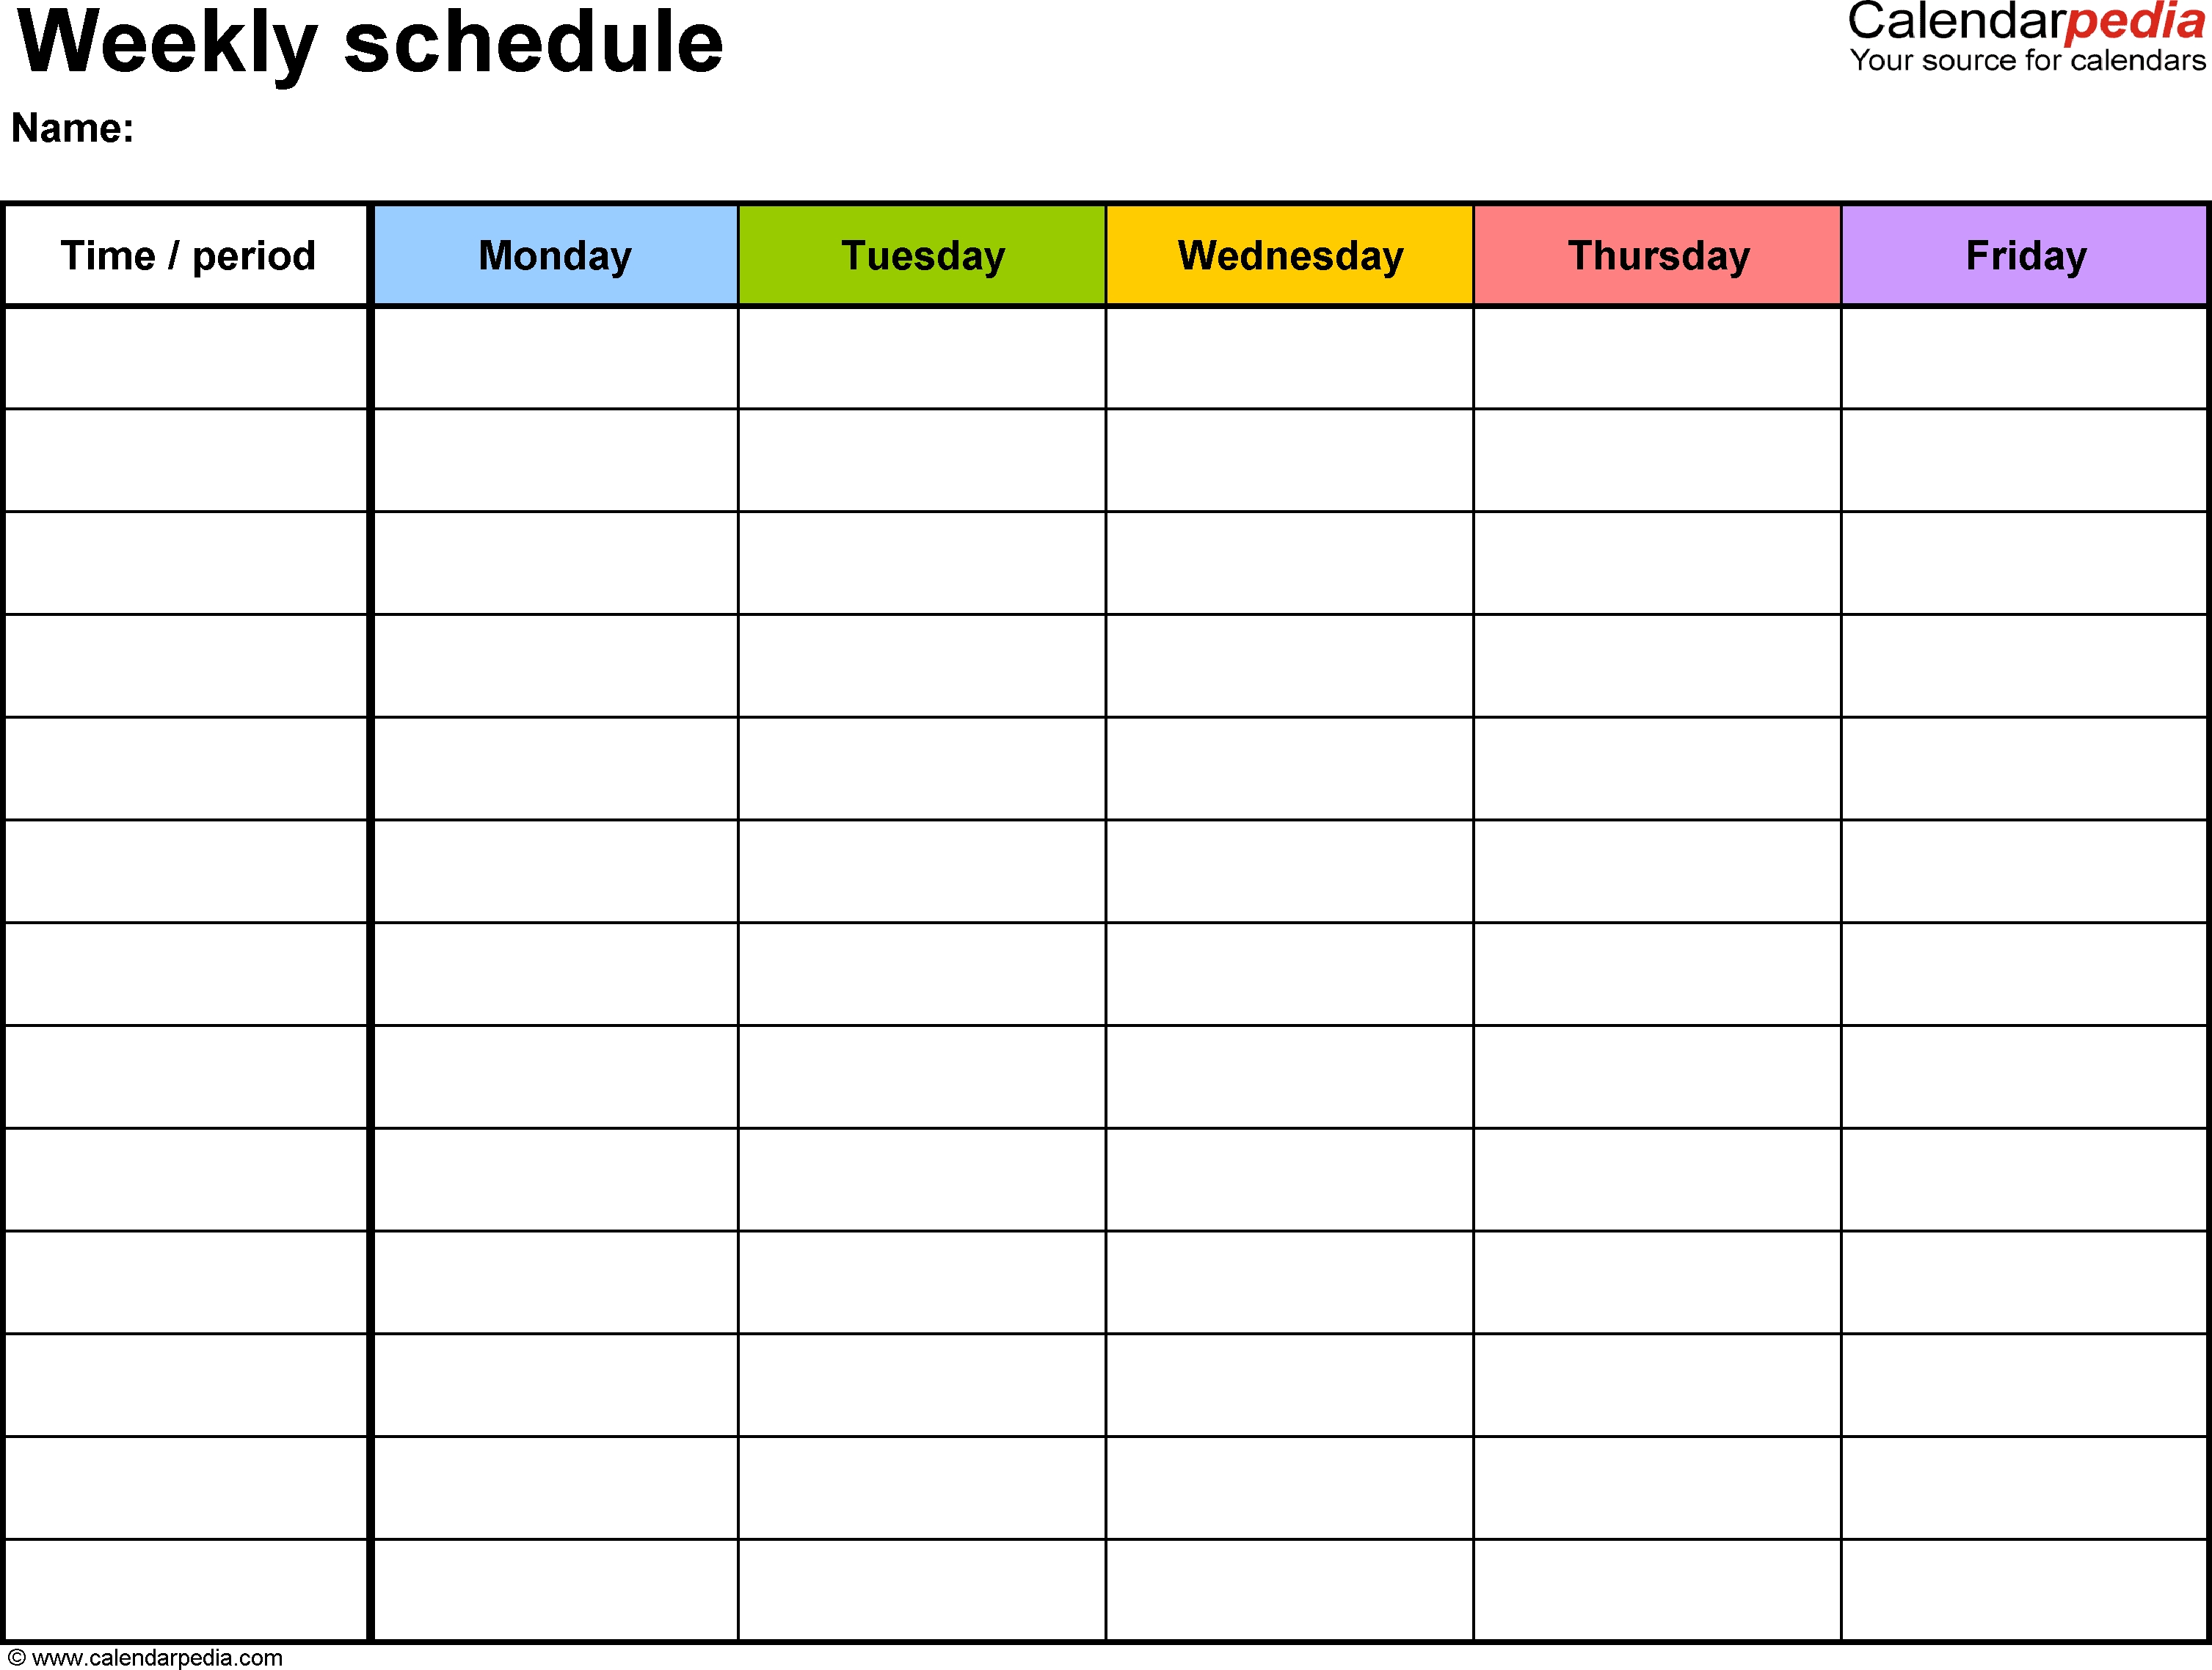 Free Weekly Schedule Templates For Word - 18 Templates regarding 7-Day Weekly Planner Template Printable